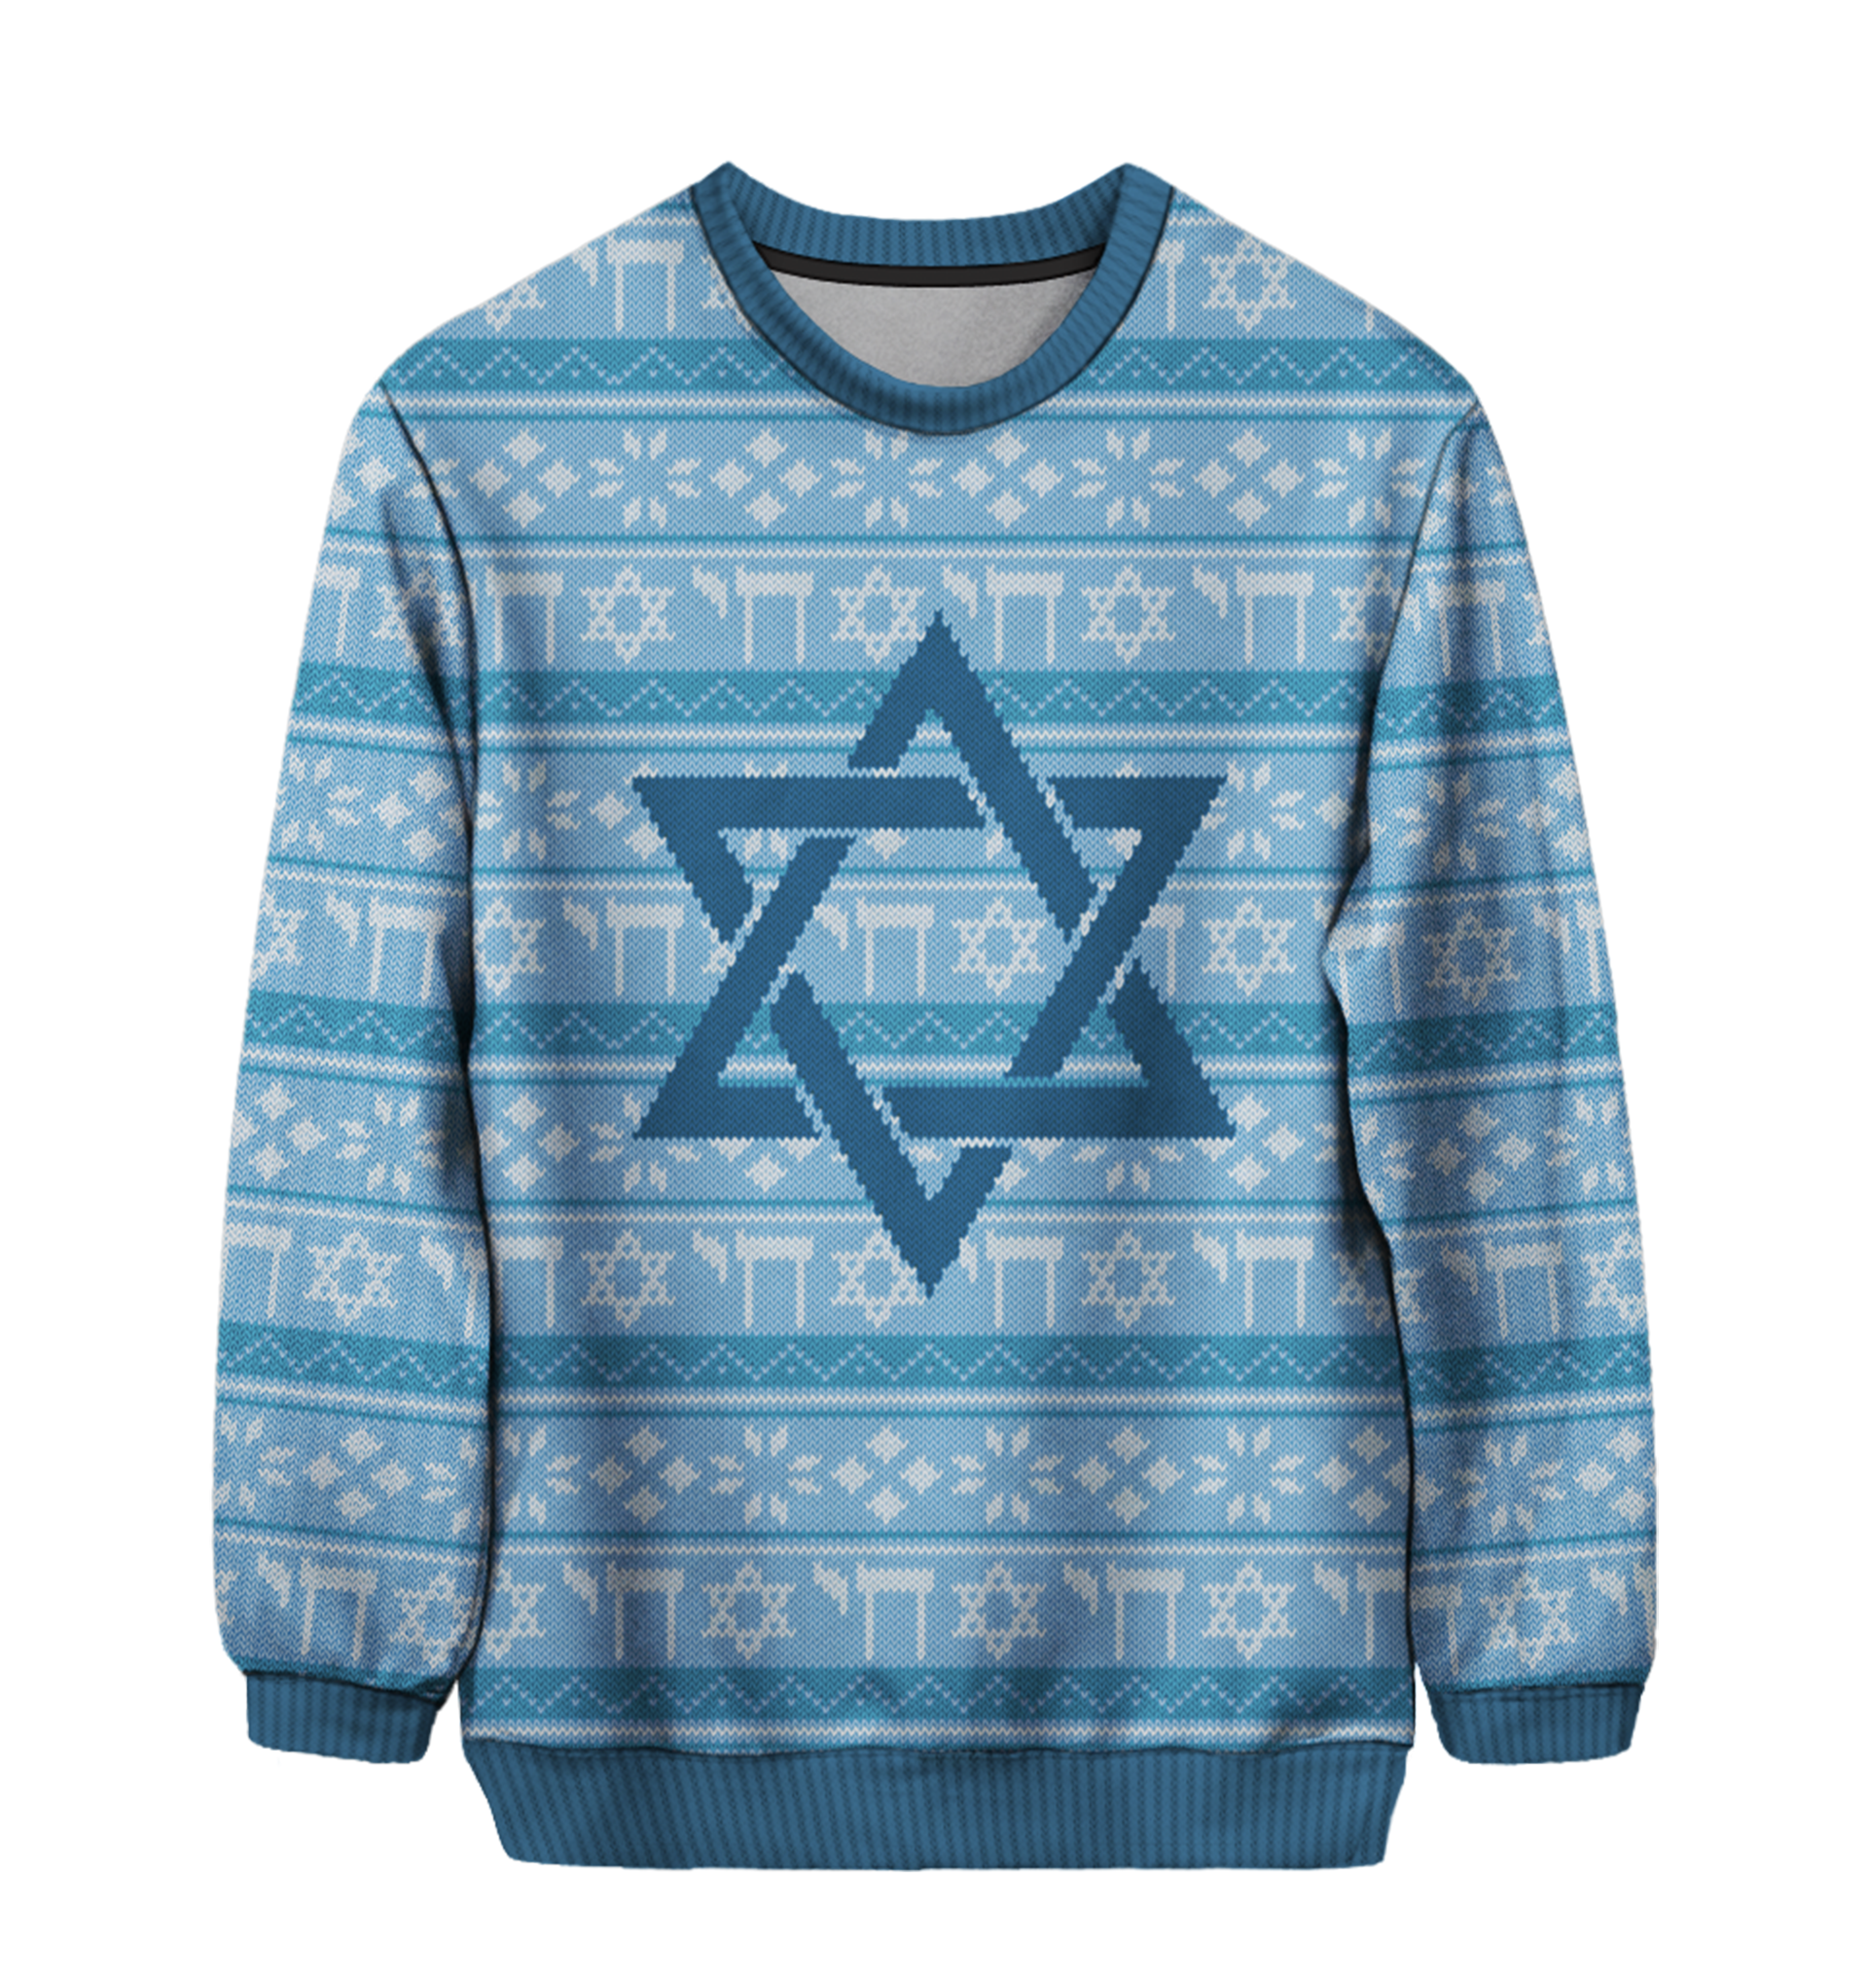 Jewish - Ugly Christmas Sweater (Limited Edition) | Products ...